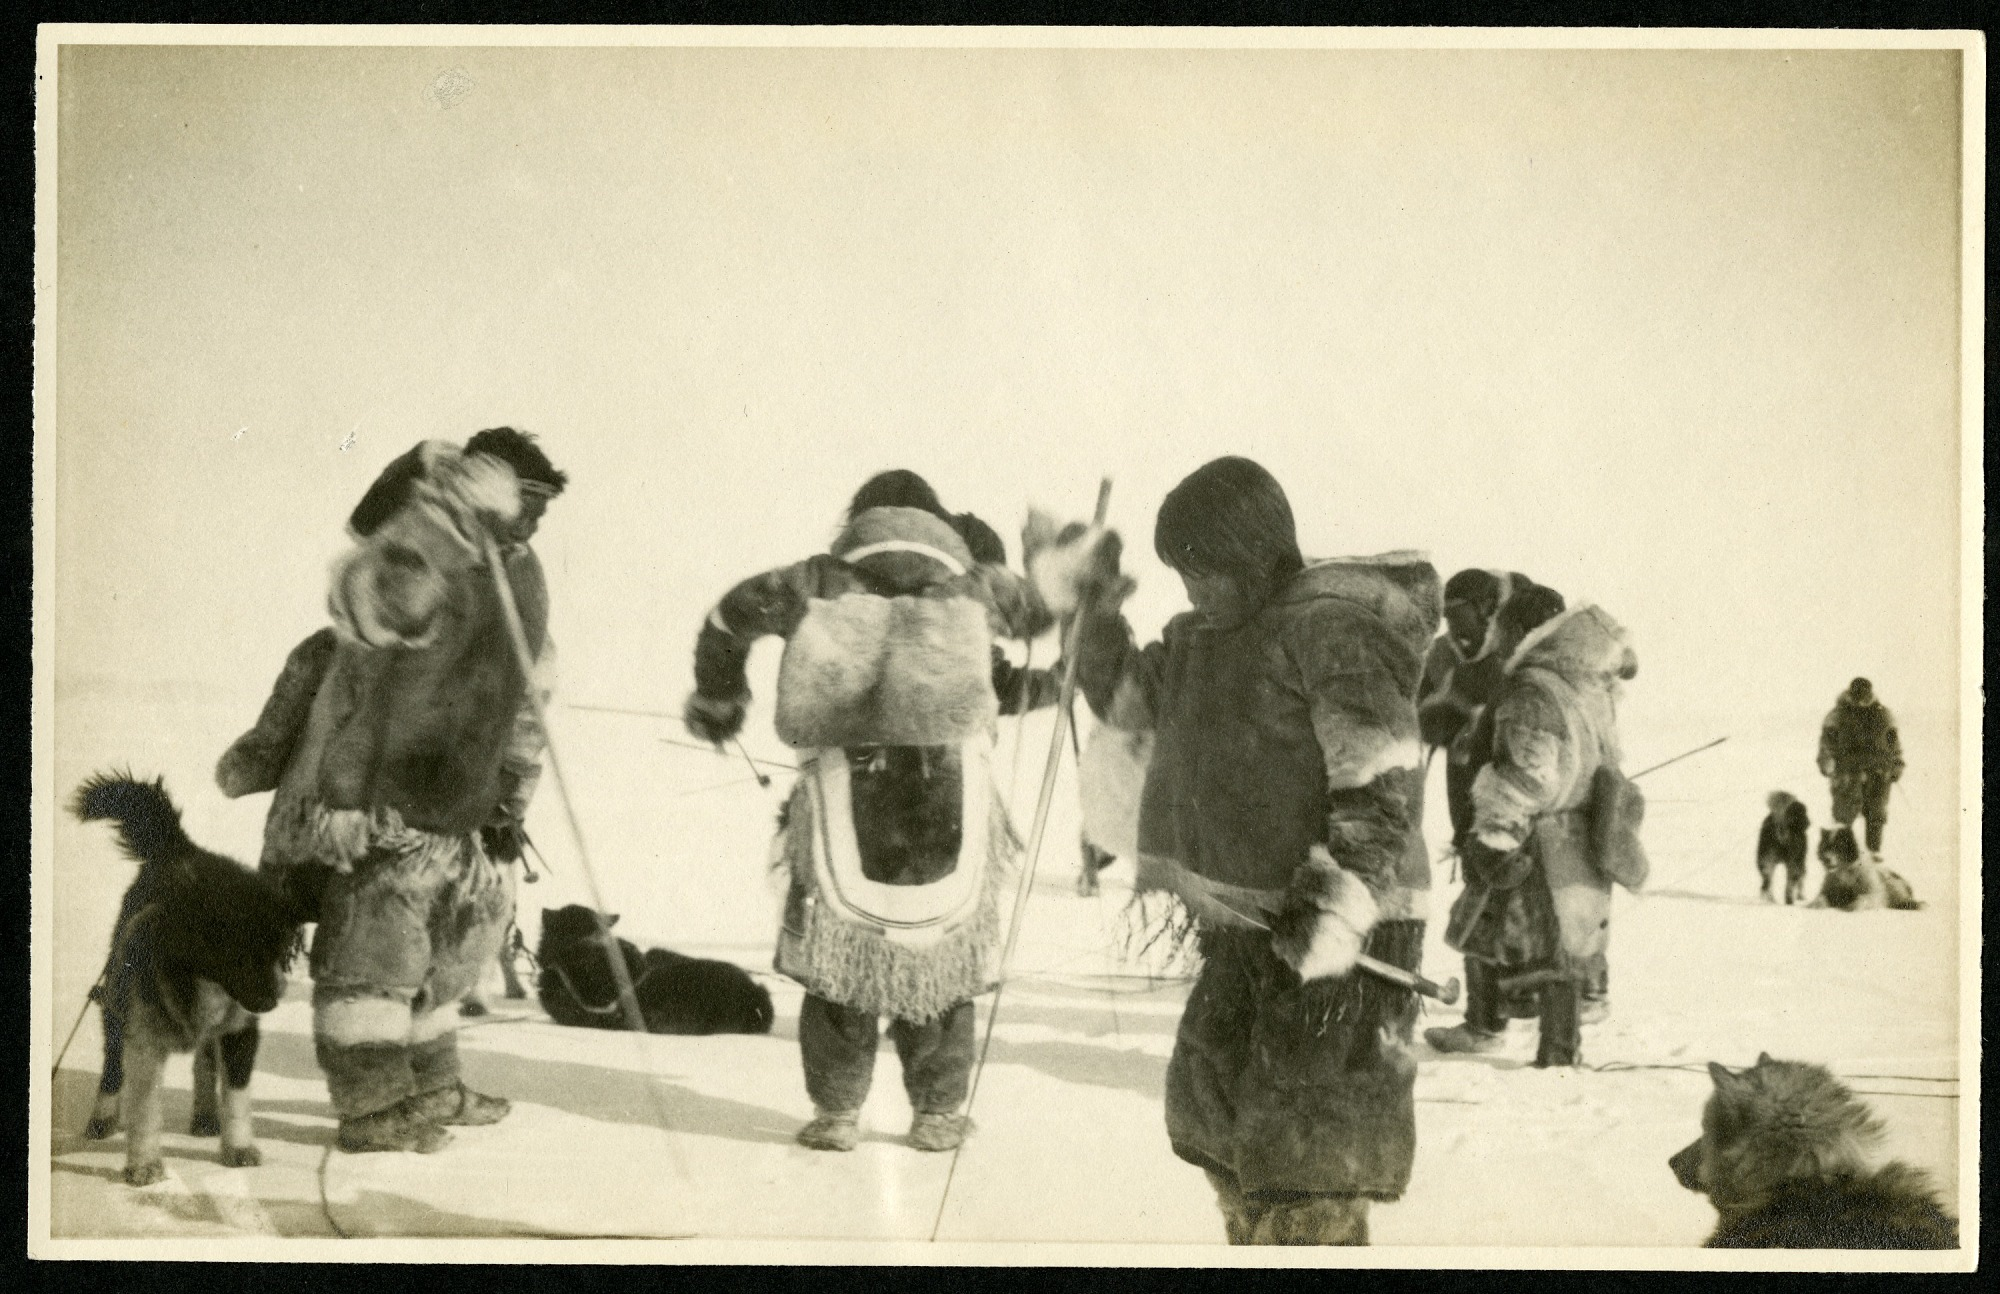 Group of Eskimos on the ice, 1924, Smithsonian Institution Archives, SIA RU007091 [SIA2015-006842].